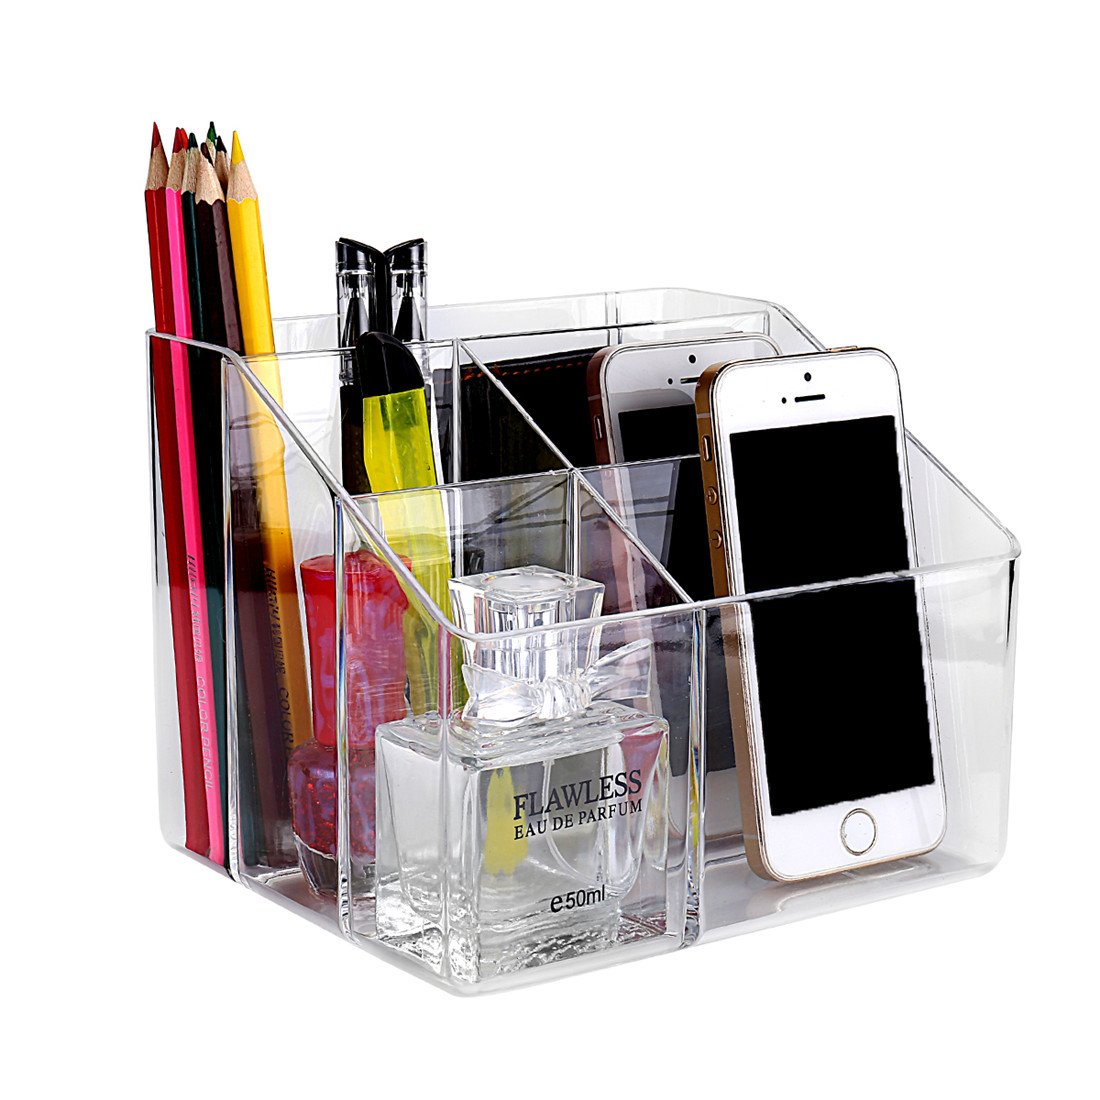 Remote Control Caddy Organizer by Sky Piea, Clear Acrylic Desktop Media Storage Holder, 5 Slots